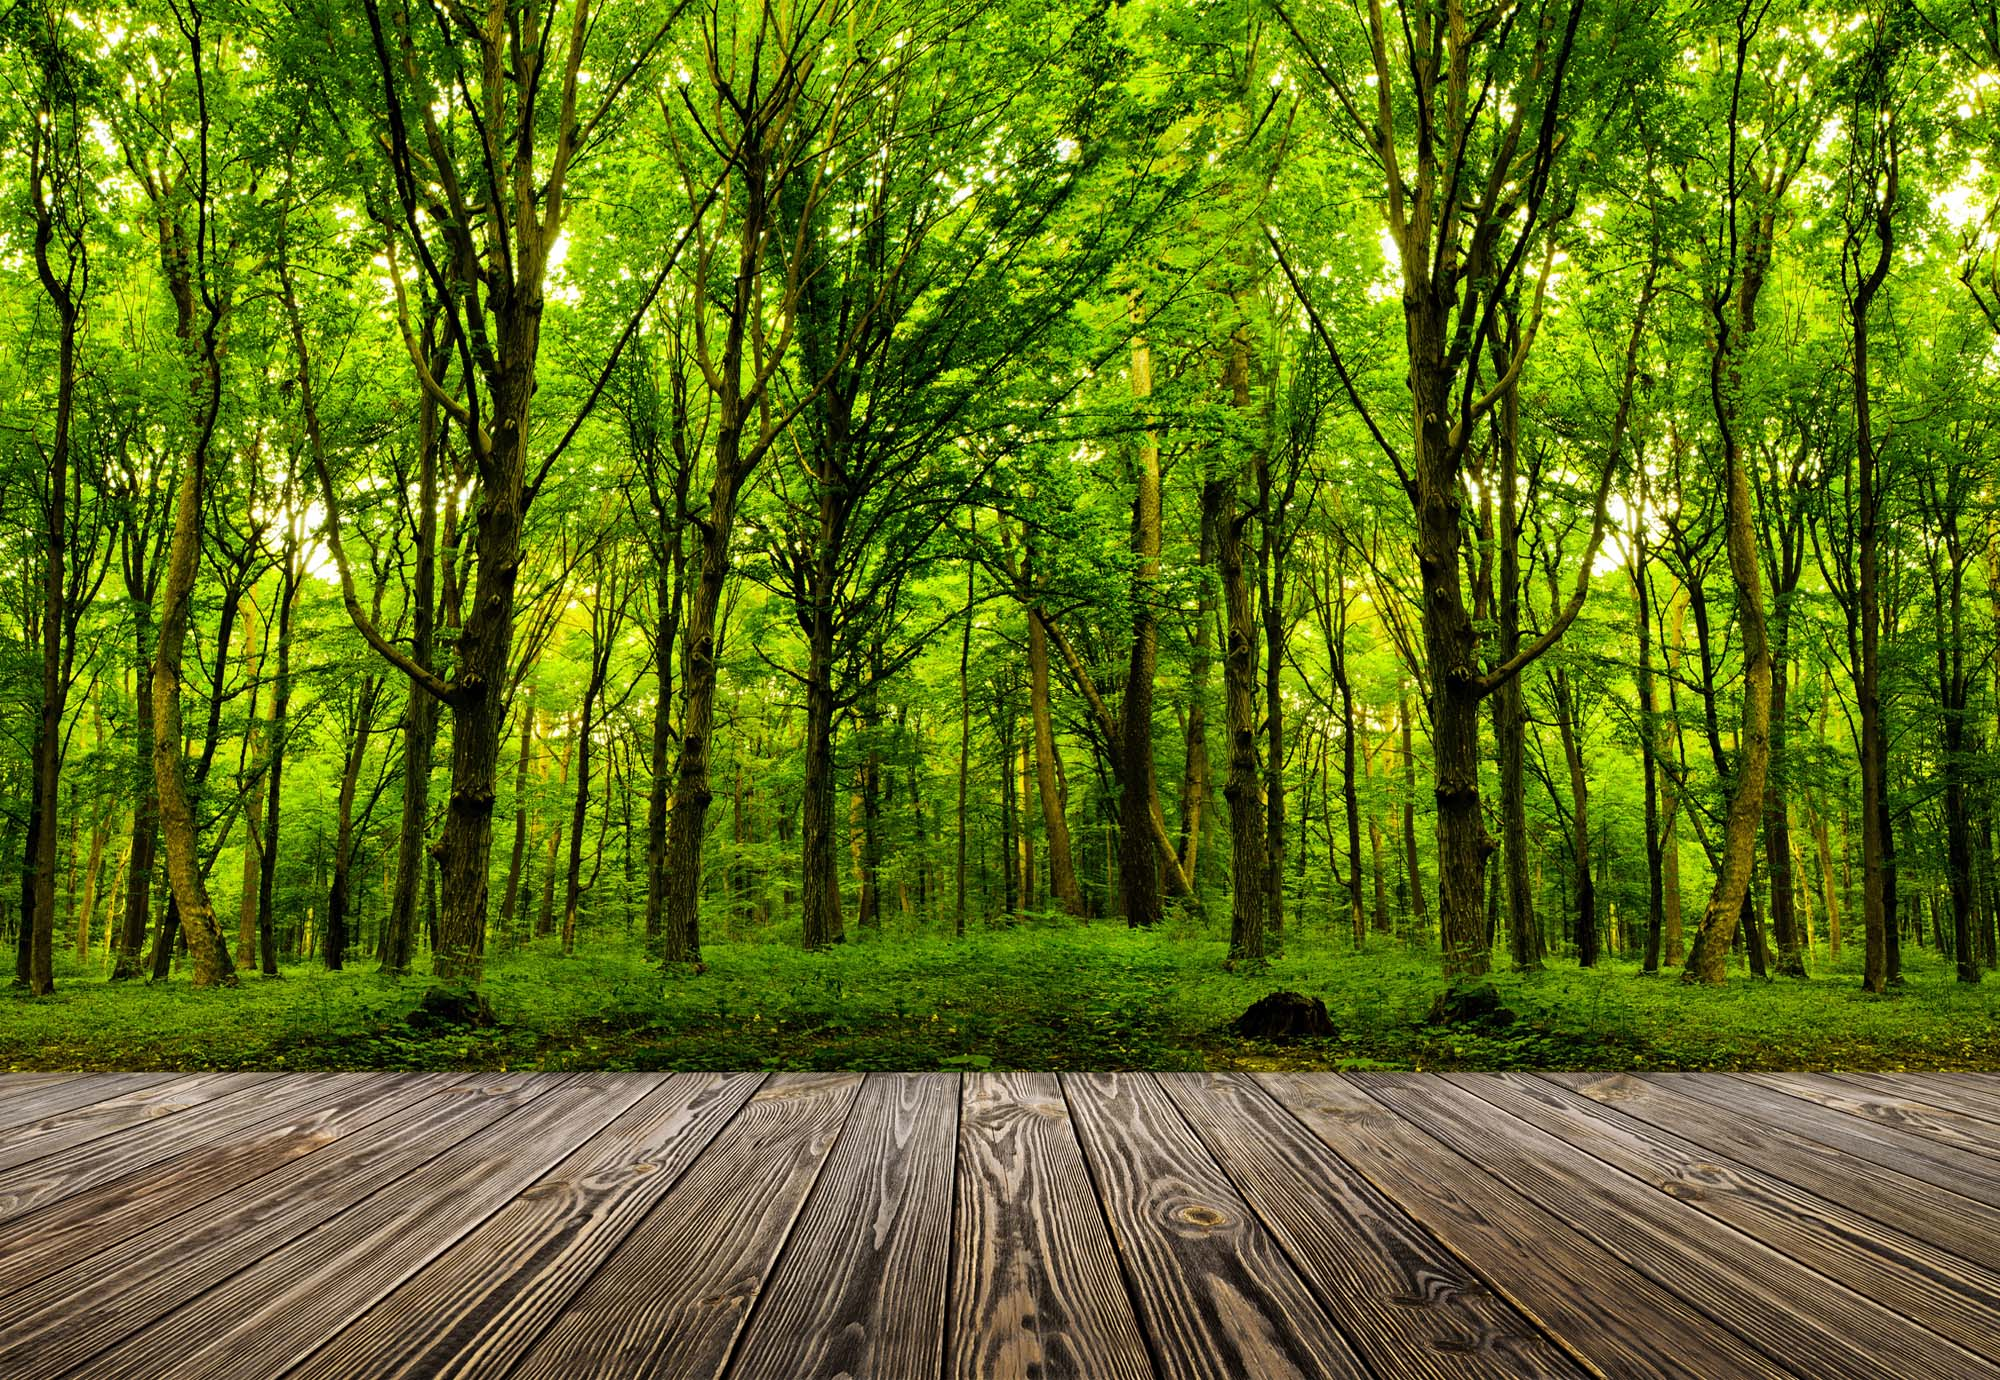 Step into the deep green Wood